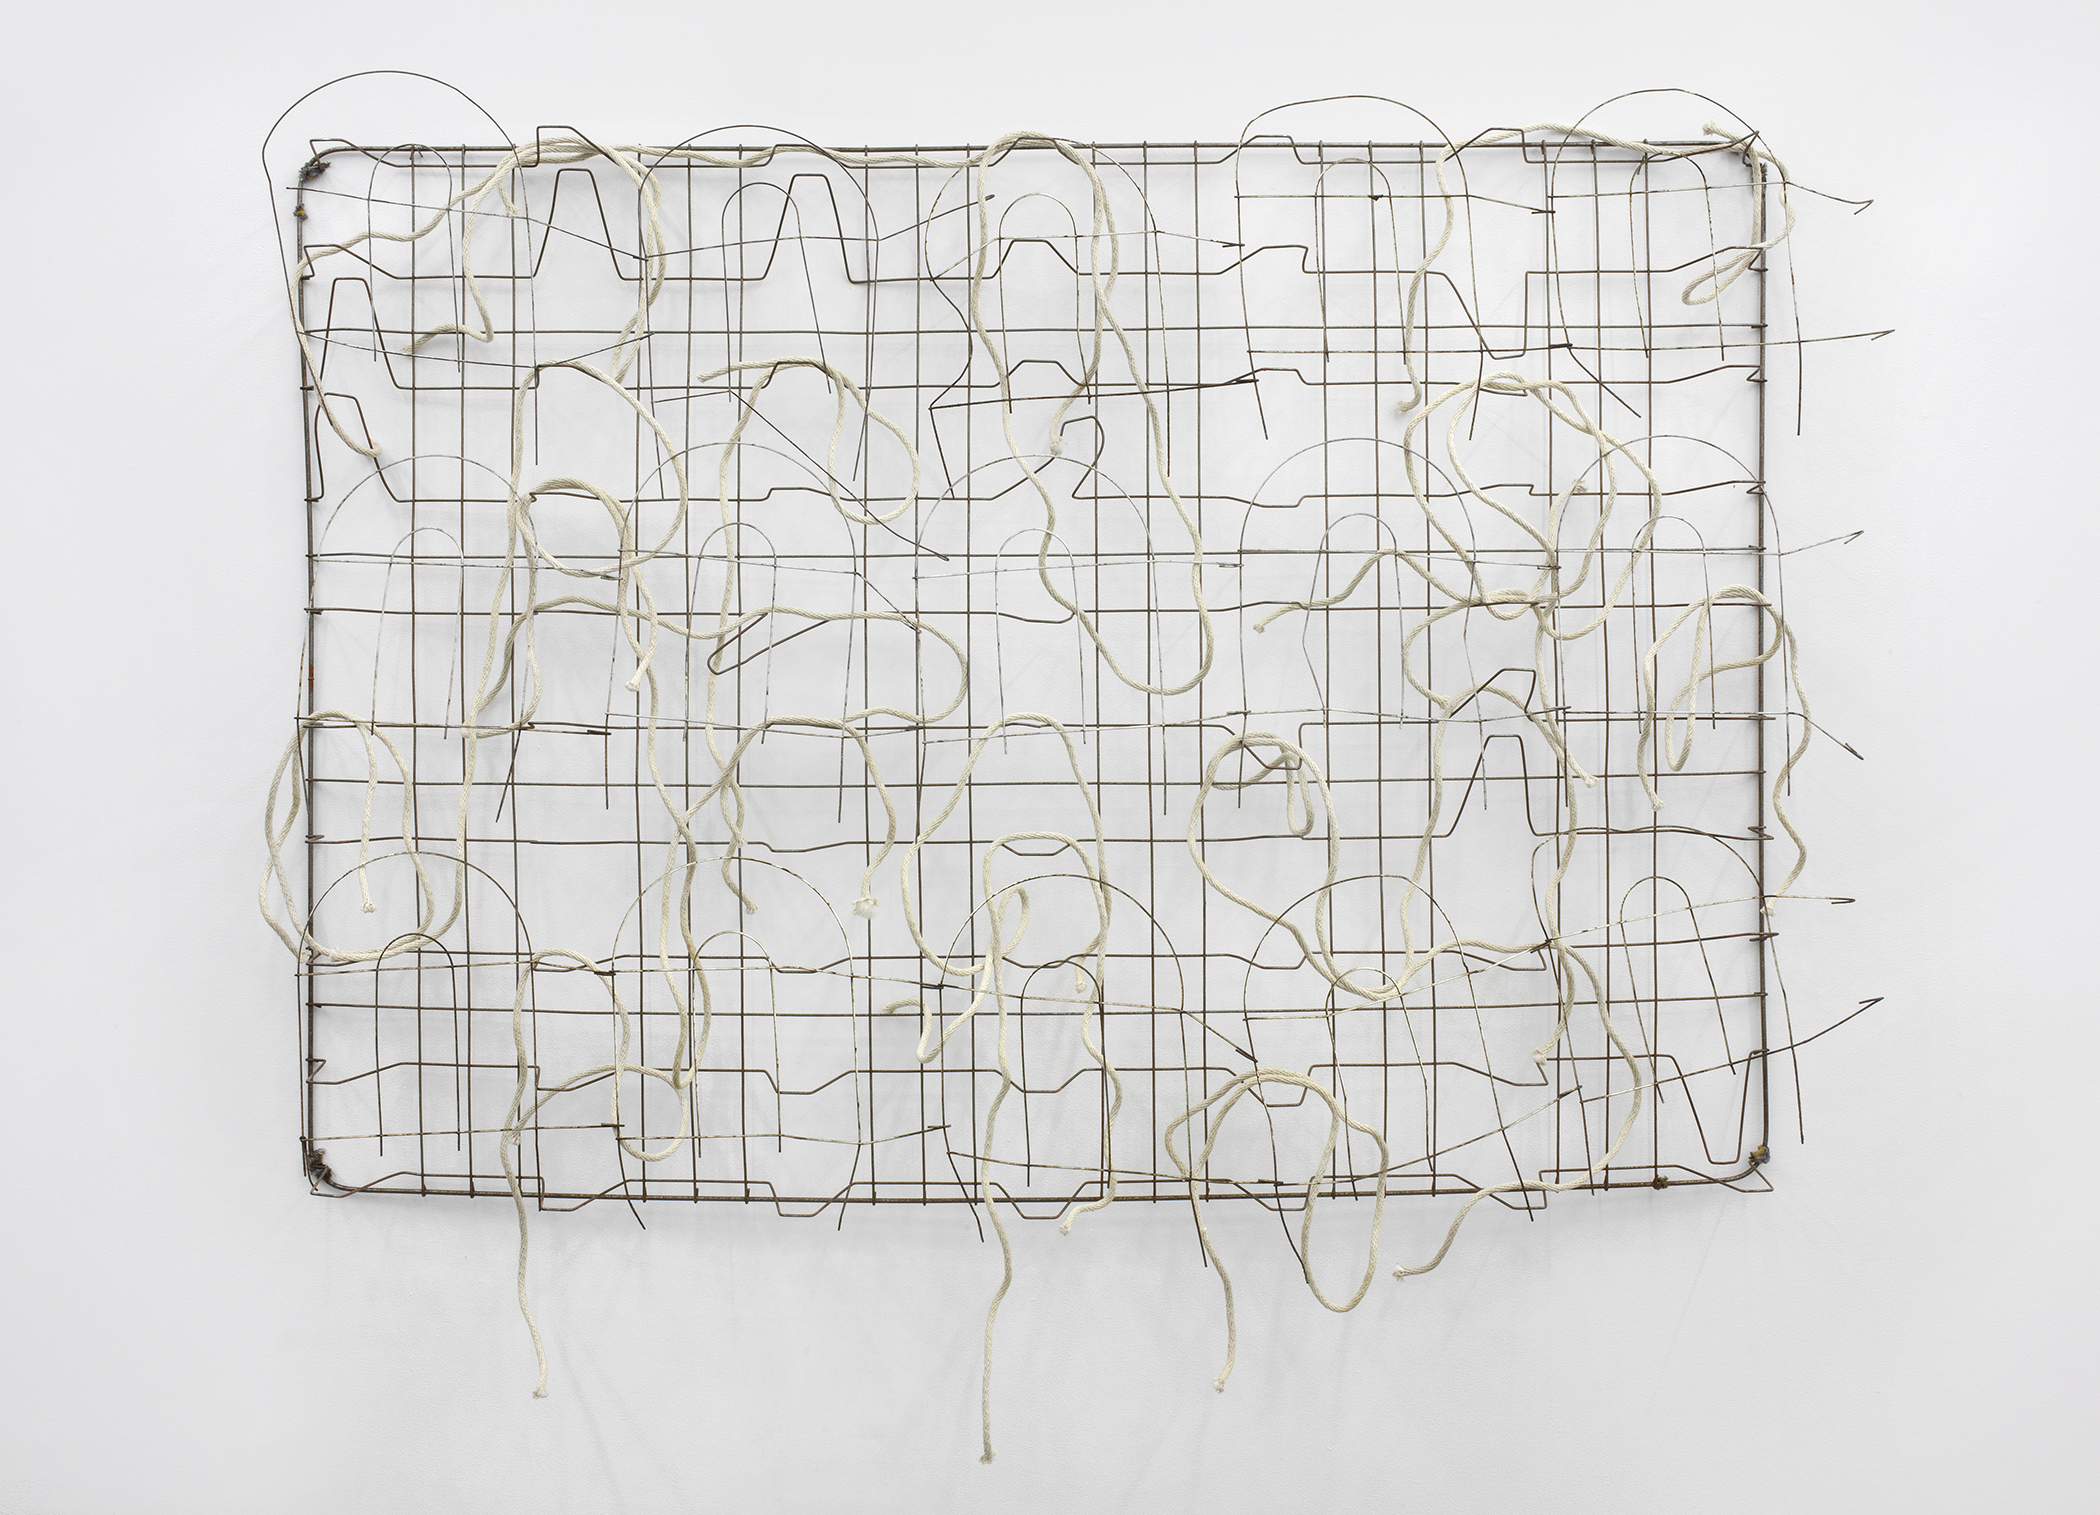 Bed with Rope and Fence  2012 bed, rope, fence 52 x 73 x 9 inches Photo: Cathy Carver